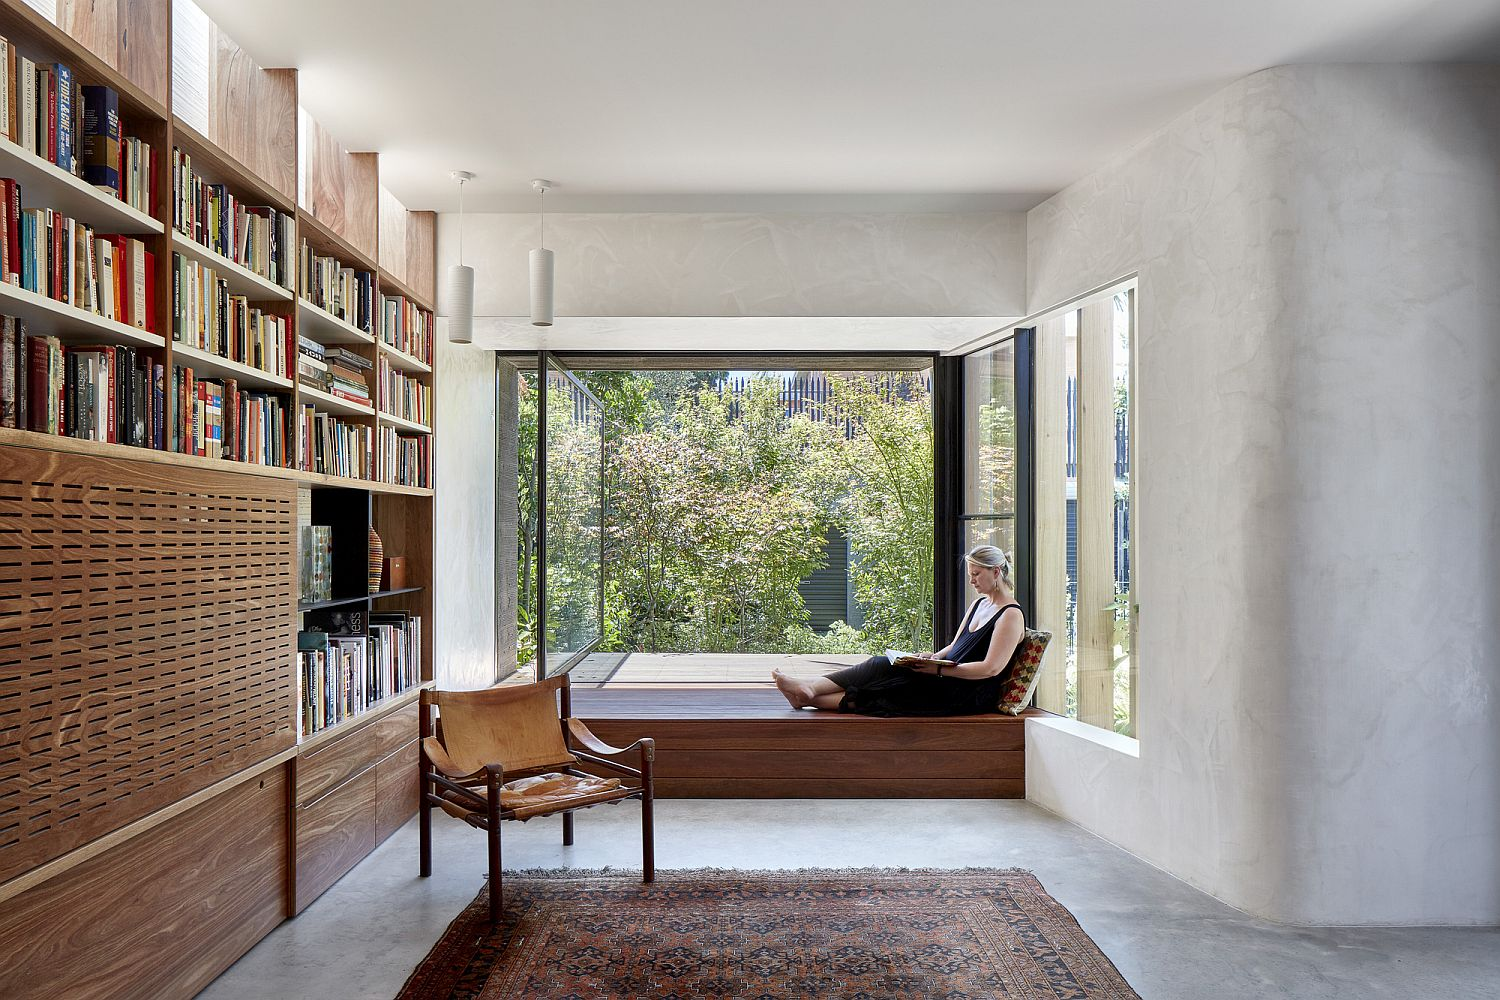 Fabulous little window seat with wall of books on the other side for a relaxing reading area